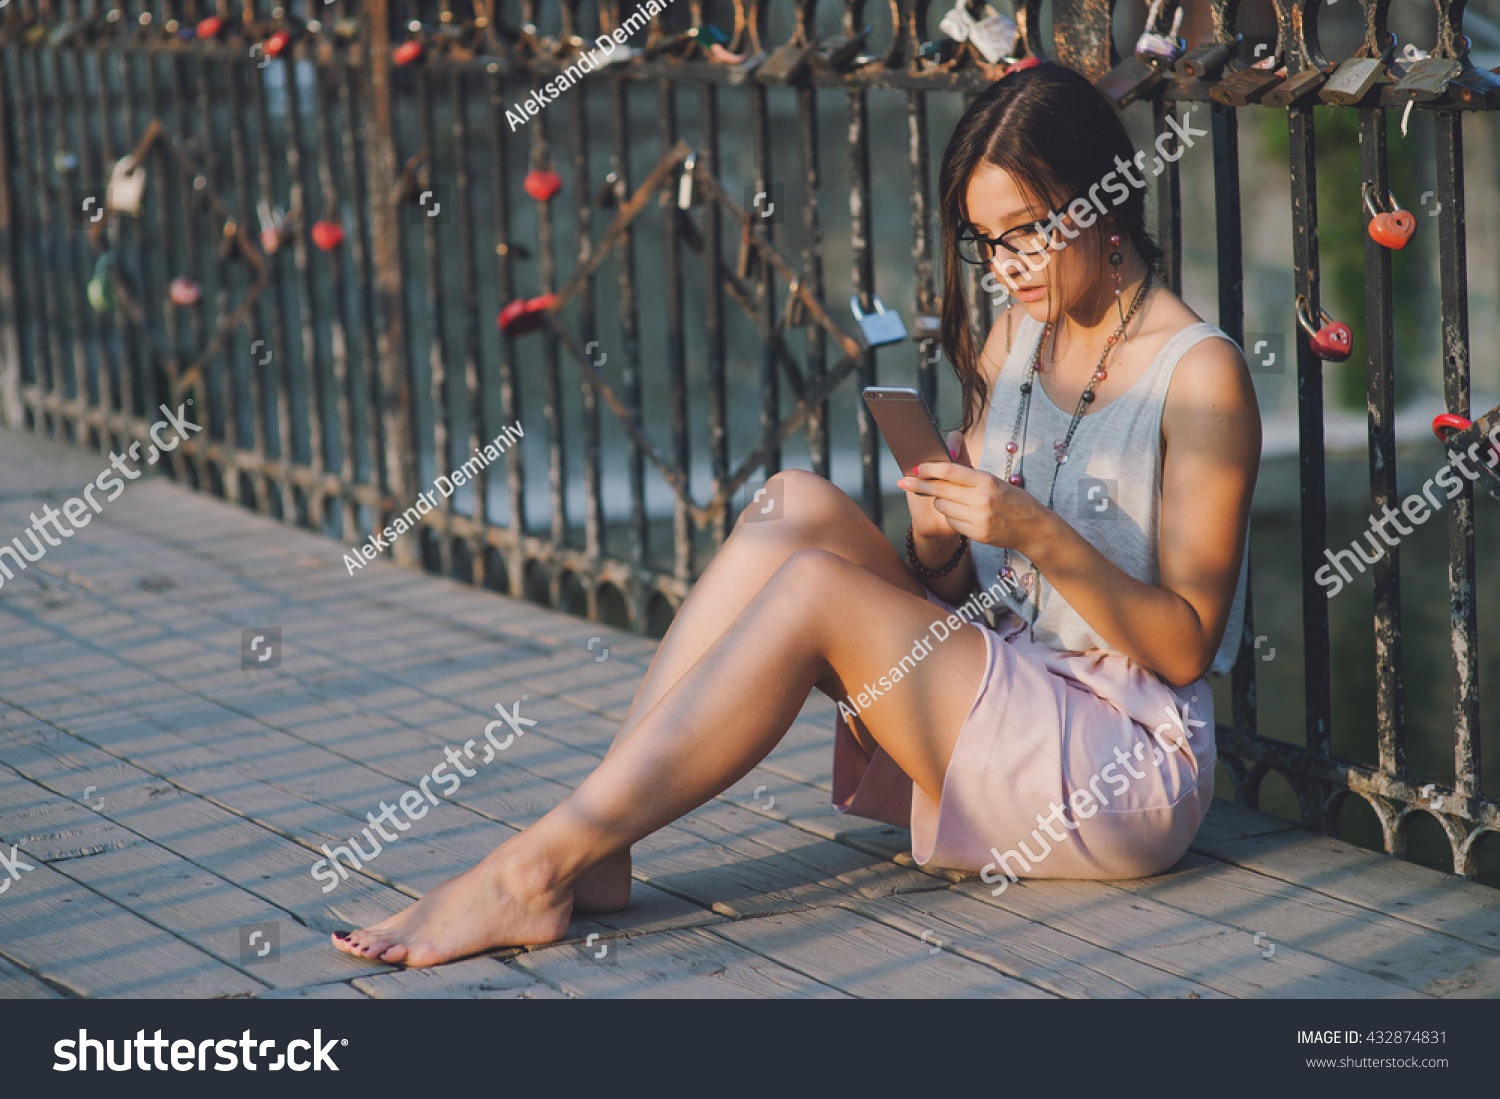 https://image.shutterstock.com/z/stock-photo-beautiful-girl-send-a-massage-with-a-smart-phone-sitting-on-a-bridge-evening-sunset-432874831.jpg